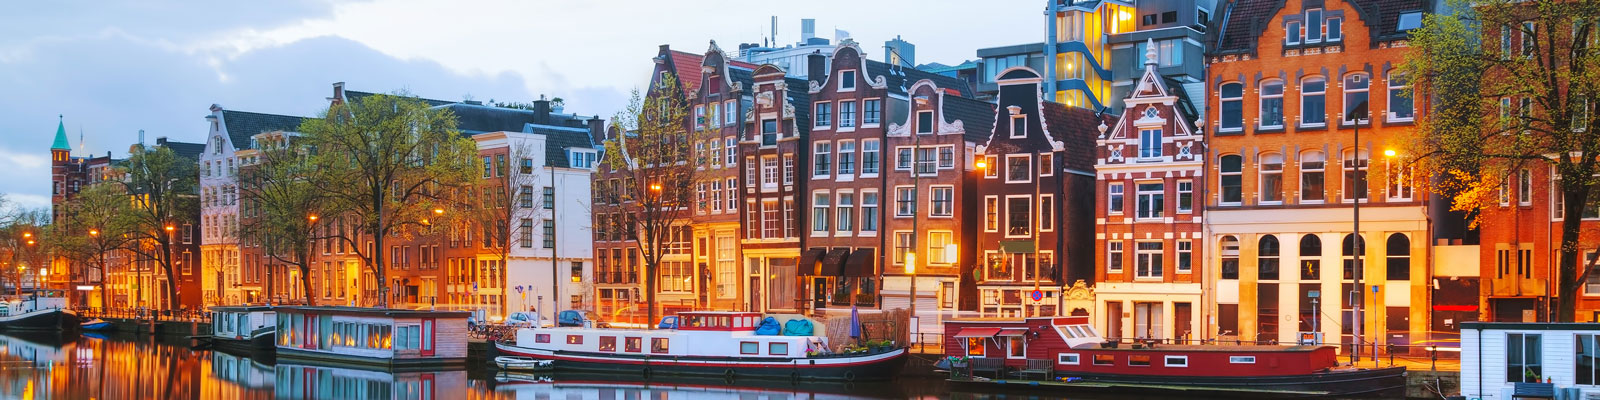 Amsterdam-Netherlands-Amstel-river Vegan Travel Guide